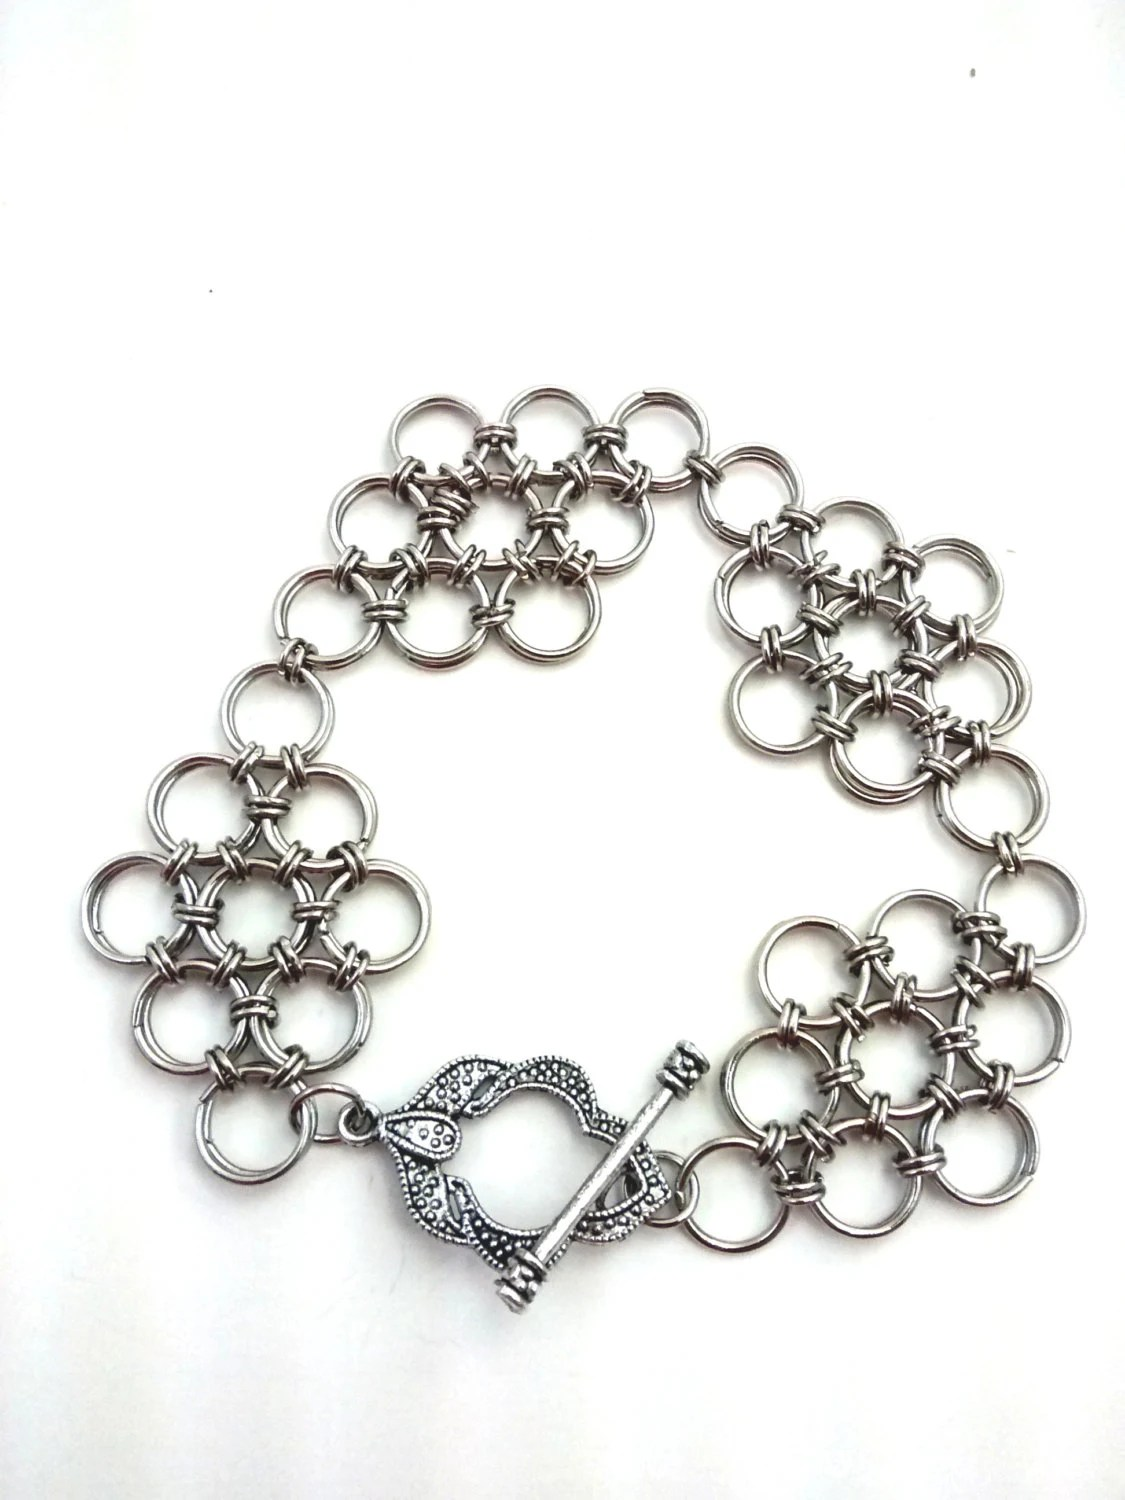 Items similar to Silver Japanese chainmail diamond weave